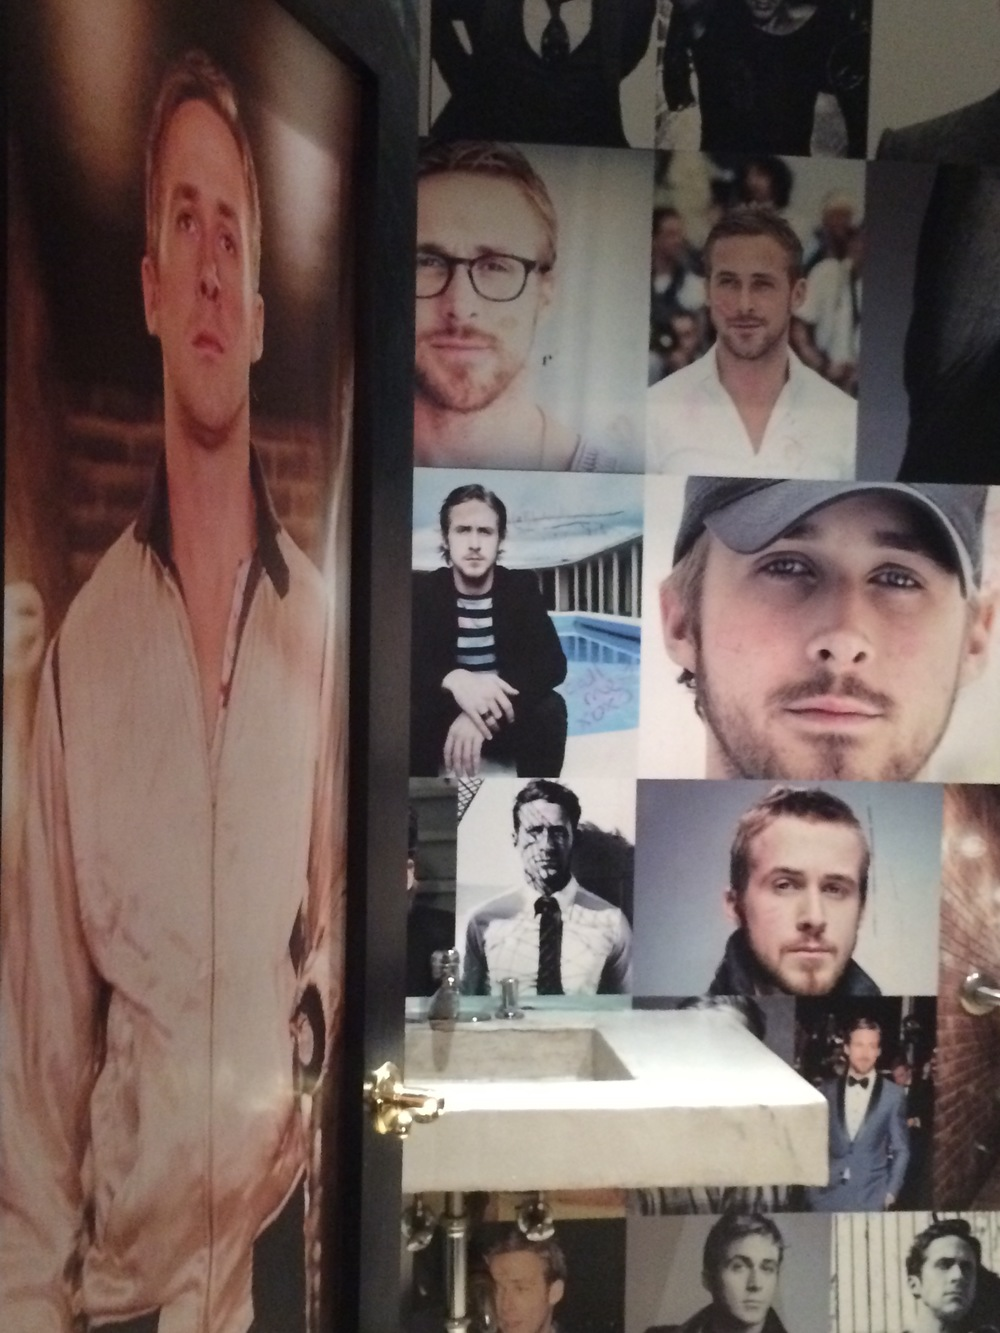 Each stall in the bathrooms is decorated in a particular theme. I chose the Ryan Gosling theme because you would be a fool if you didn't want him watching you pee at all angles.